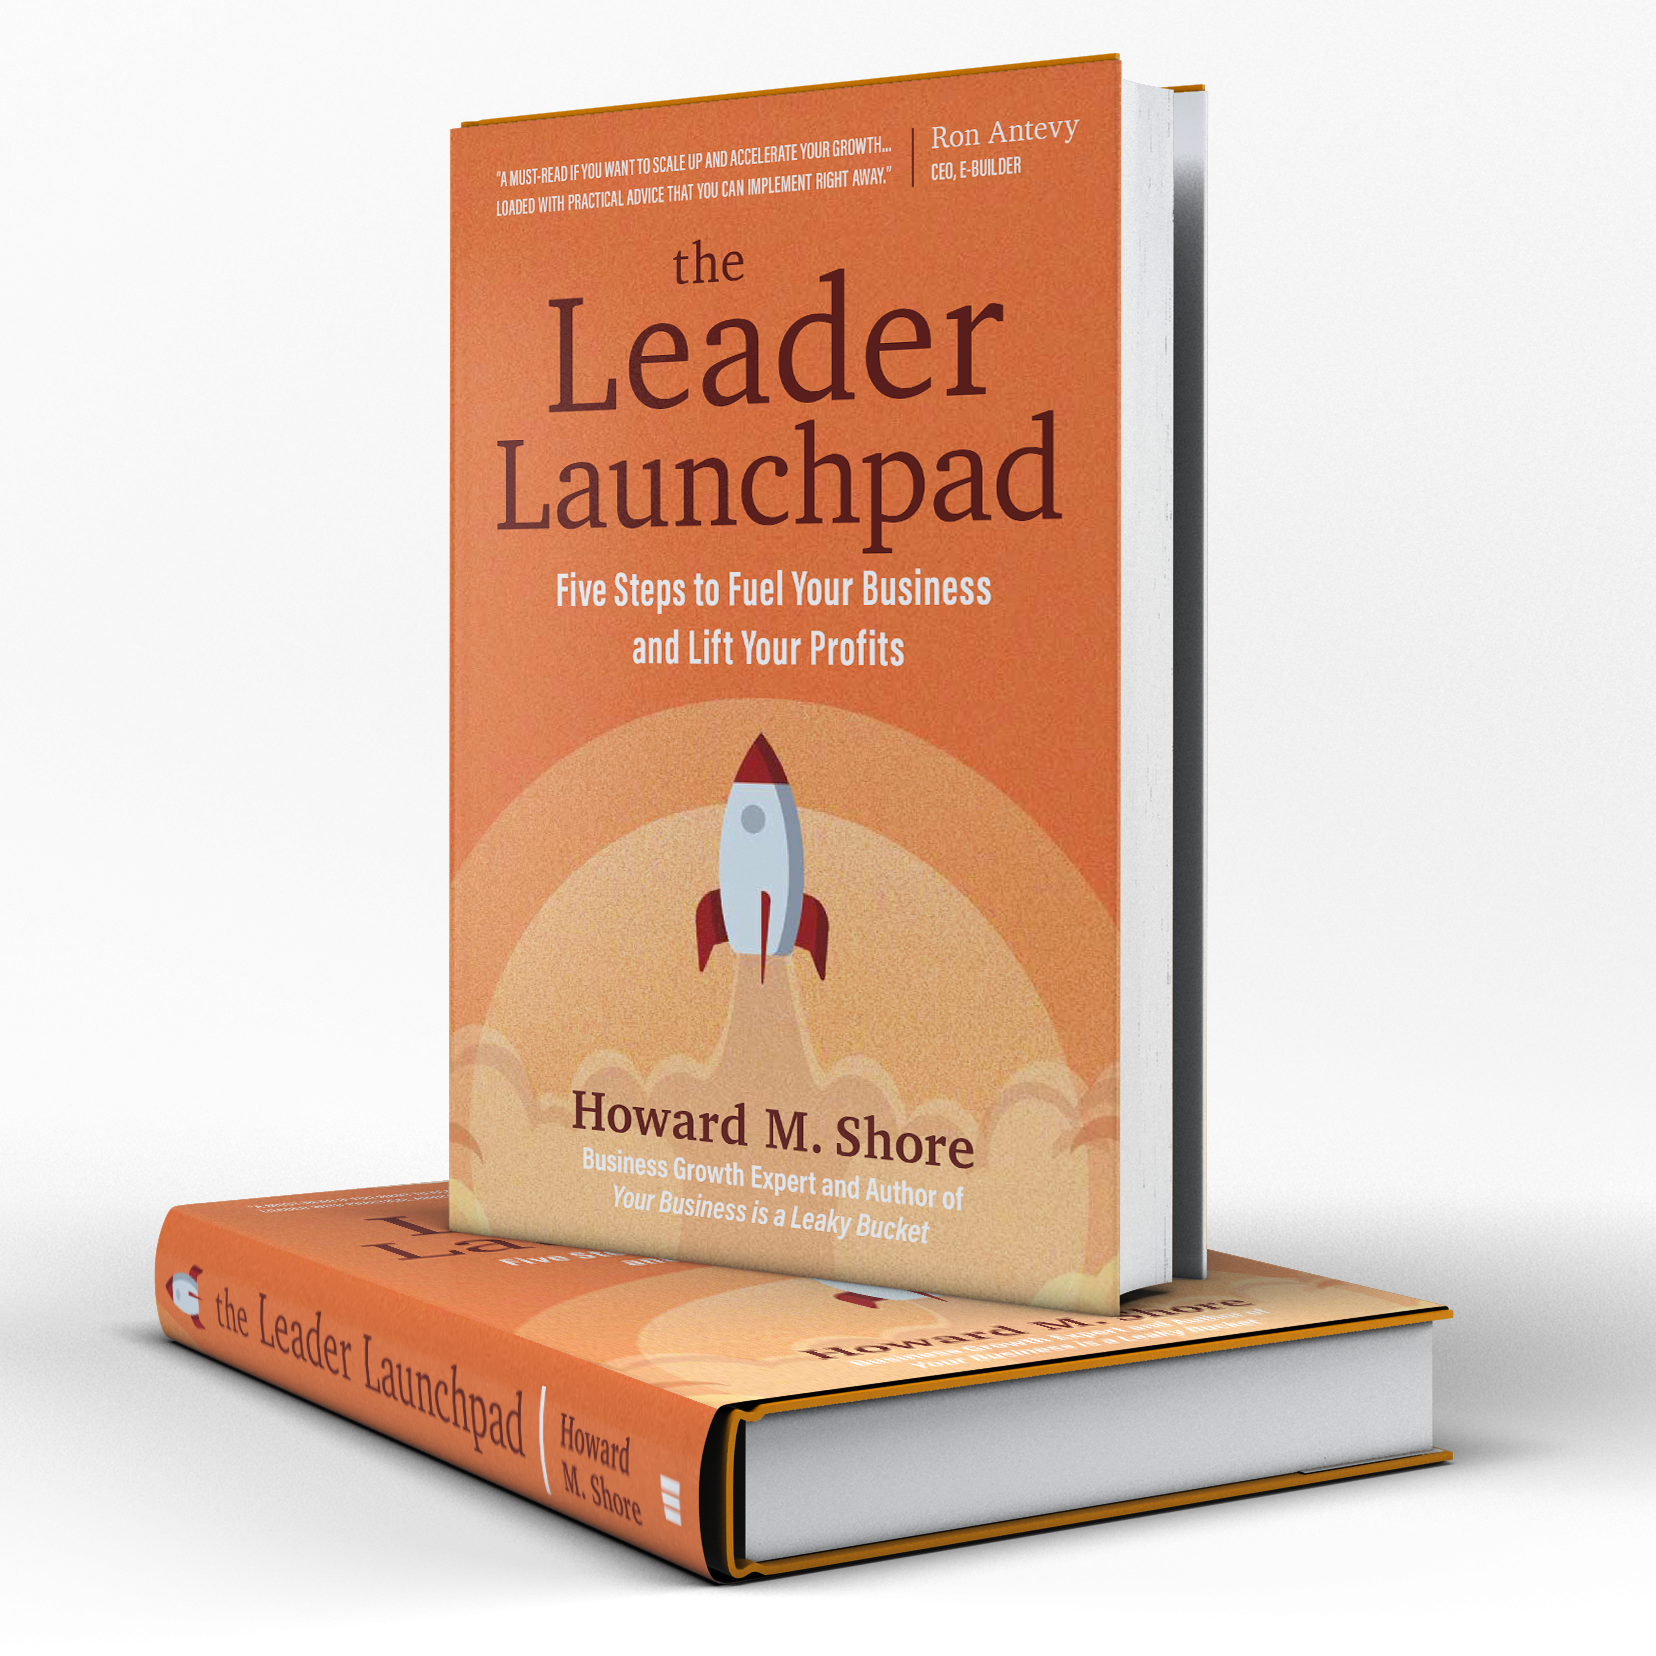 The Leader Launchpad Book